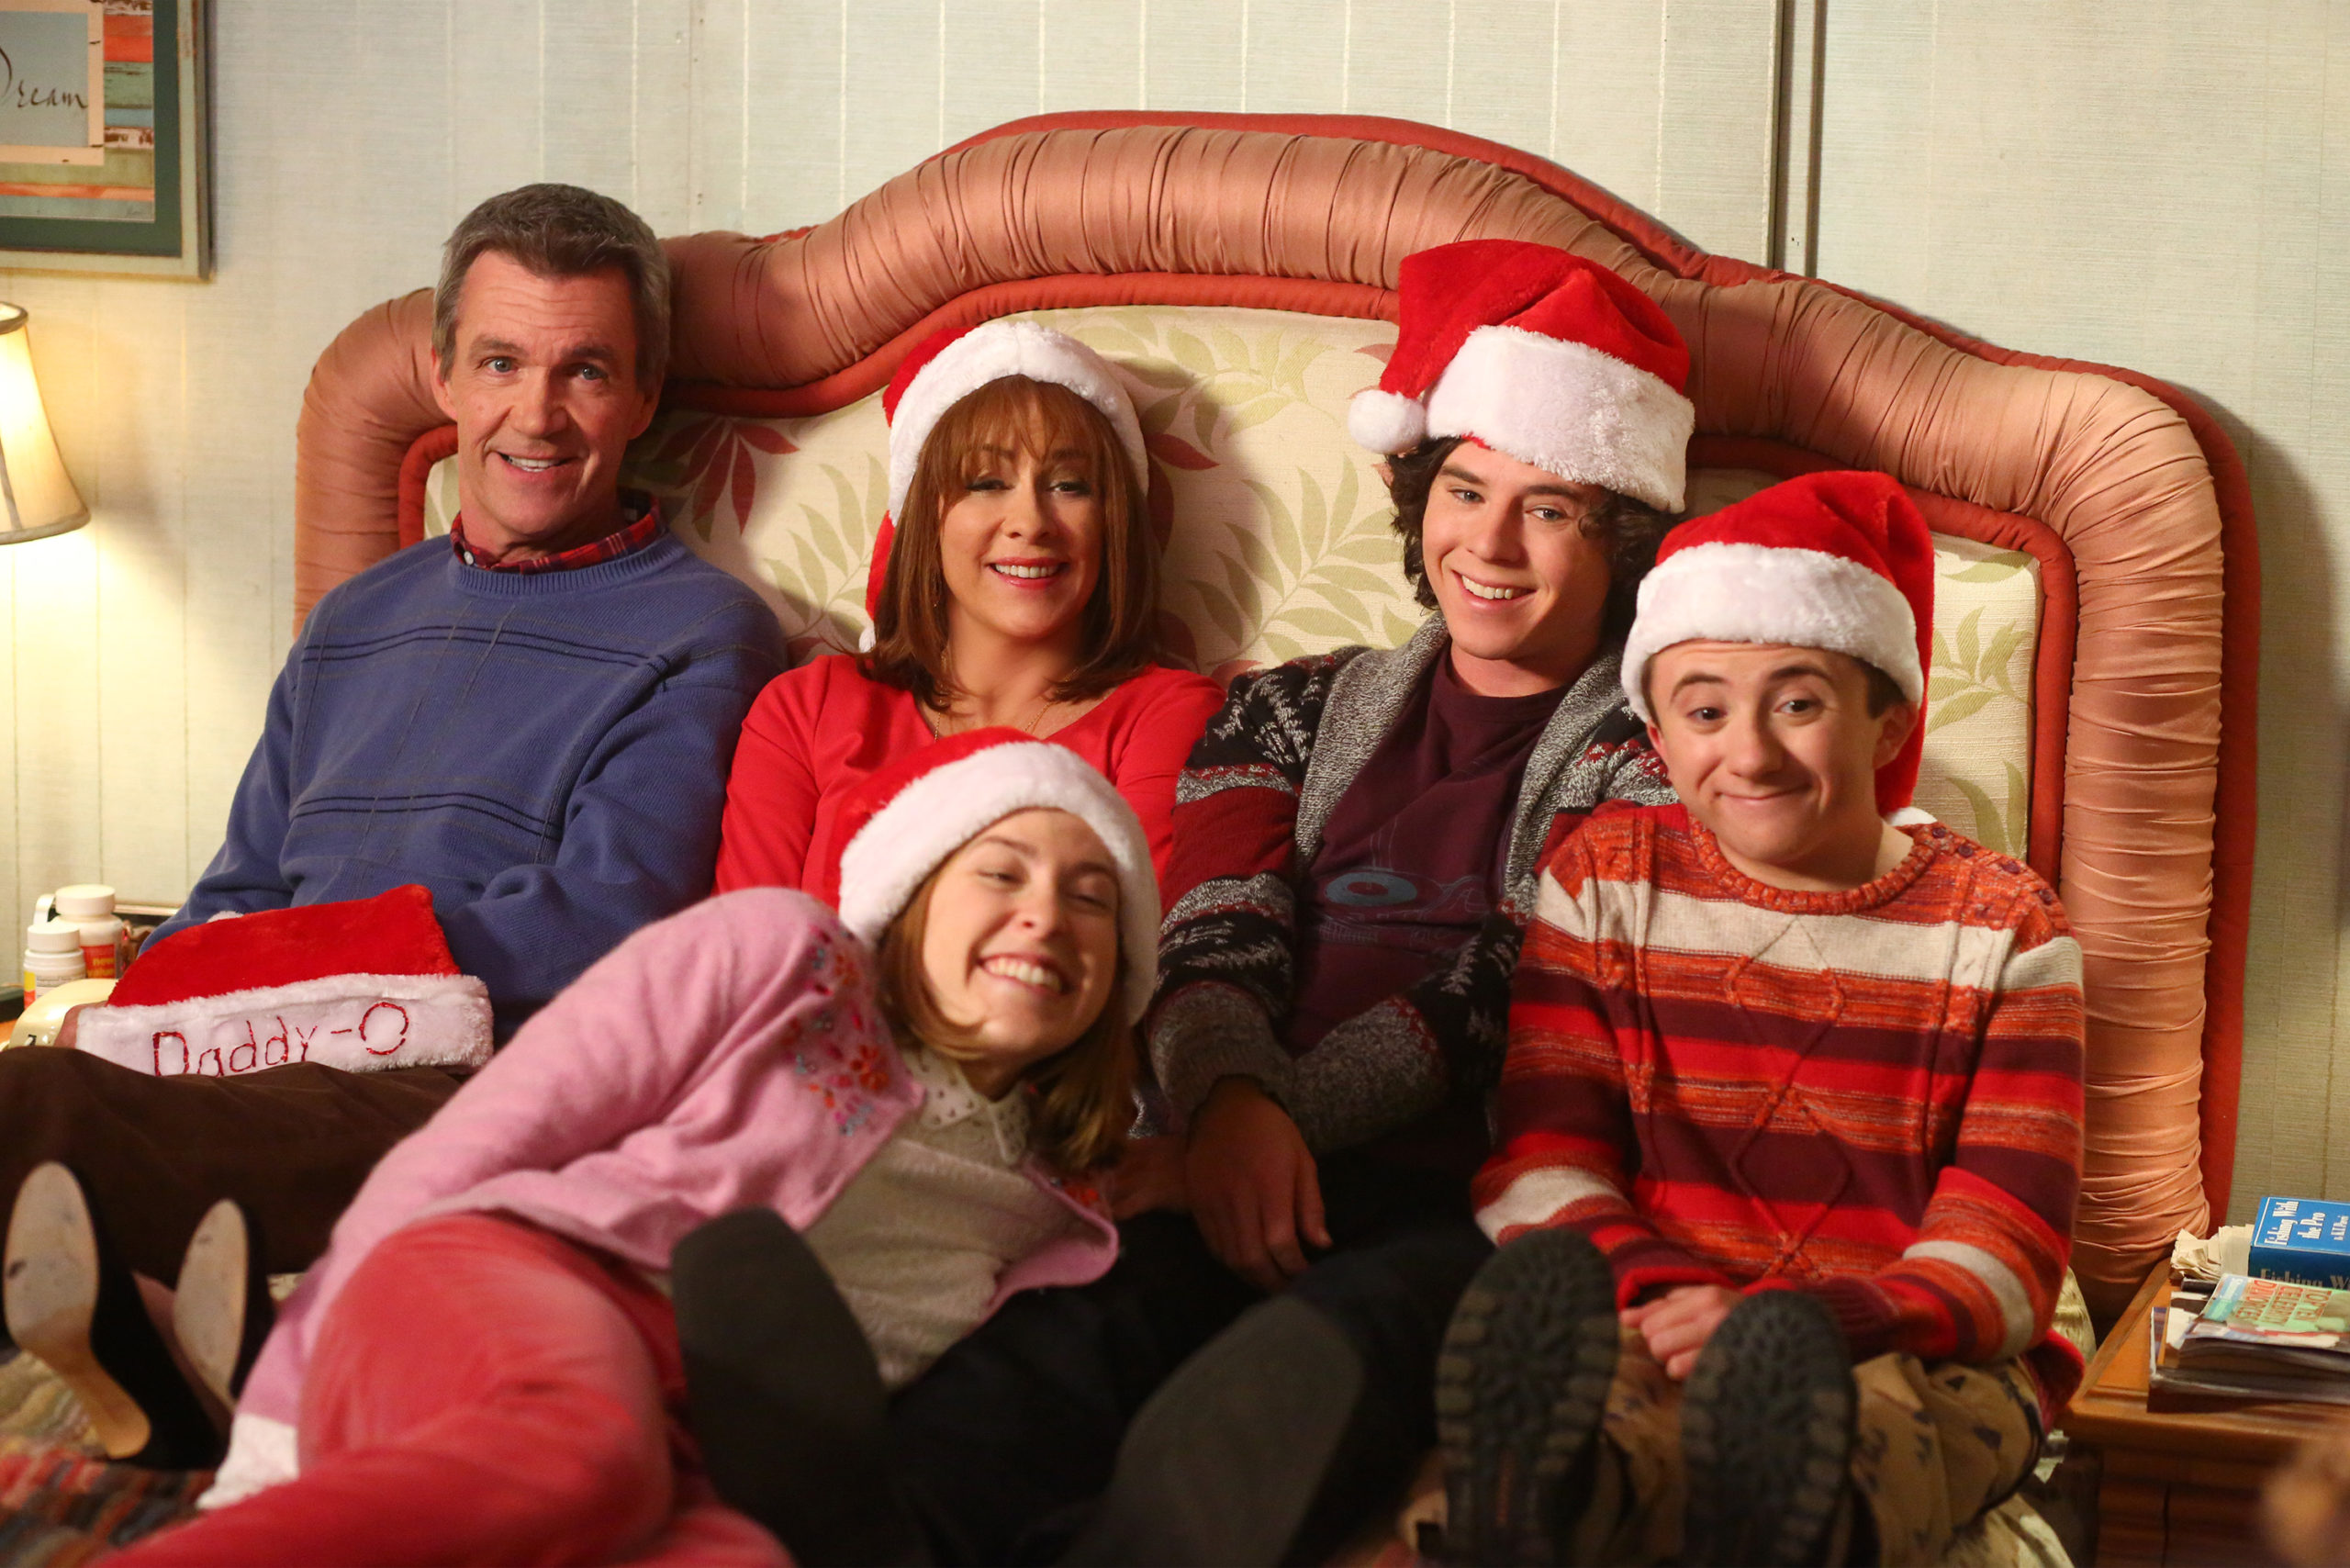 The Middle - NEIL FLYNN, PATRICIA HEATON, EDEN SHER, CHARLIE MCDERMOTT, ATTICUS SHAFFER